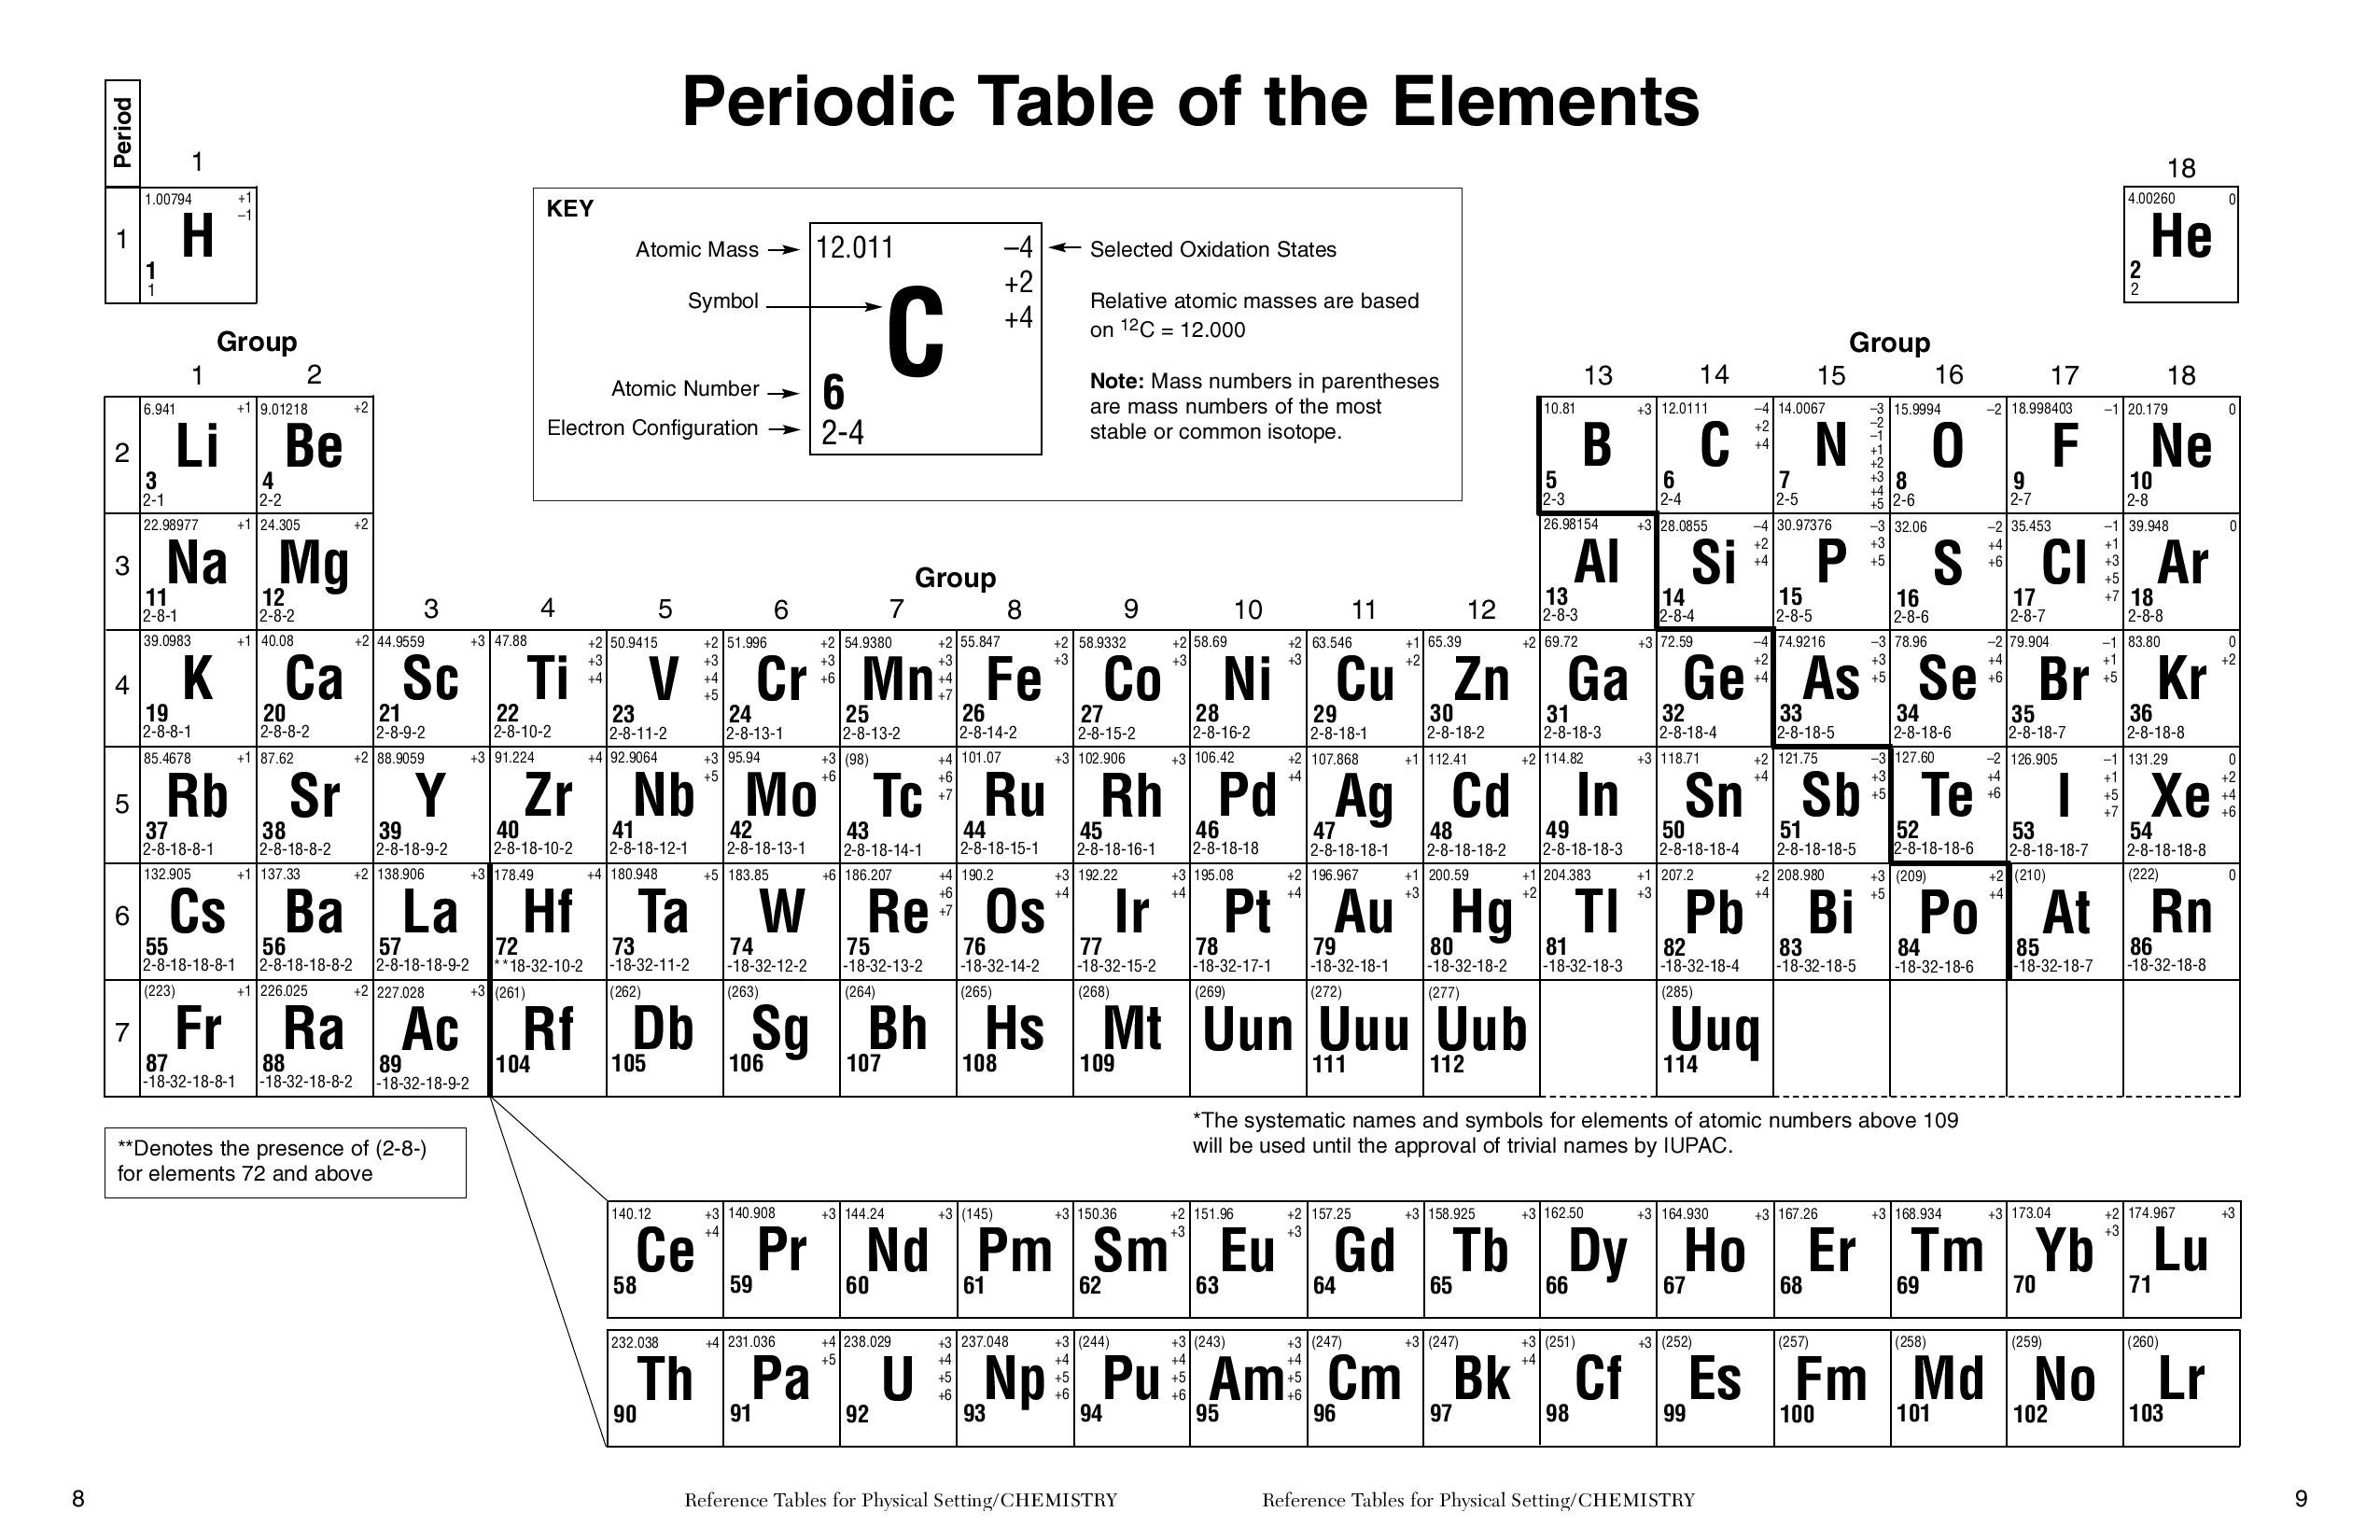 General chemistry reference table ii by juan betancourt issuu gamestrikefo Choice Image